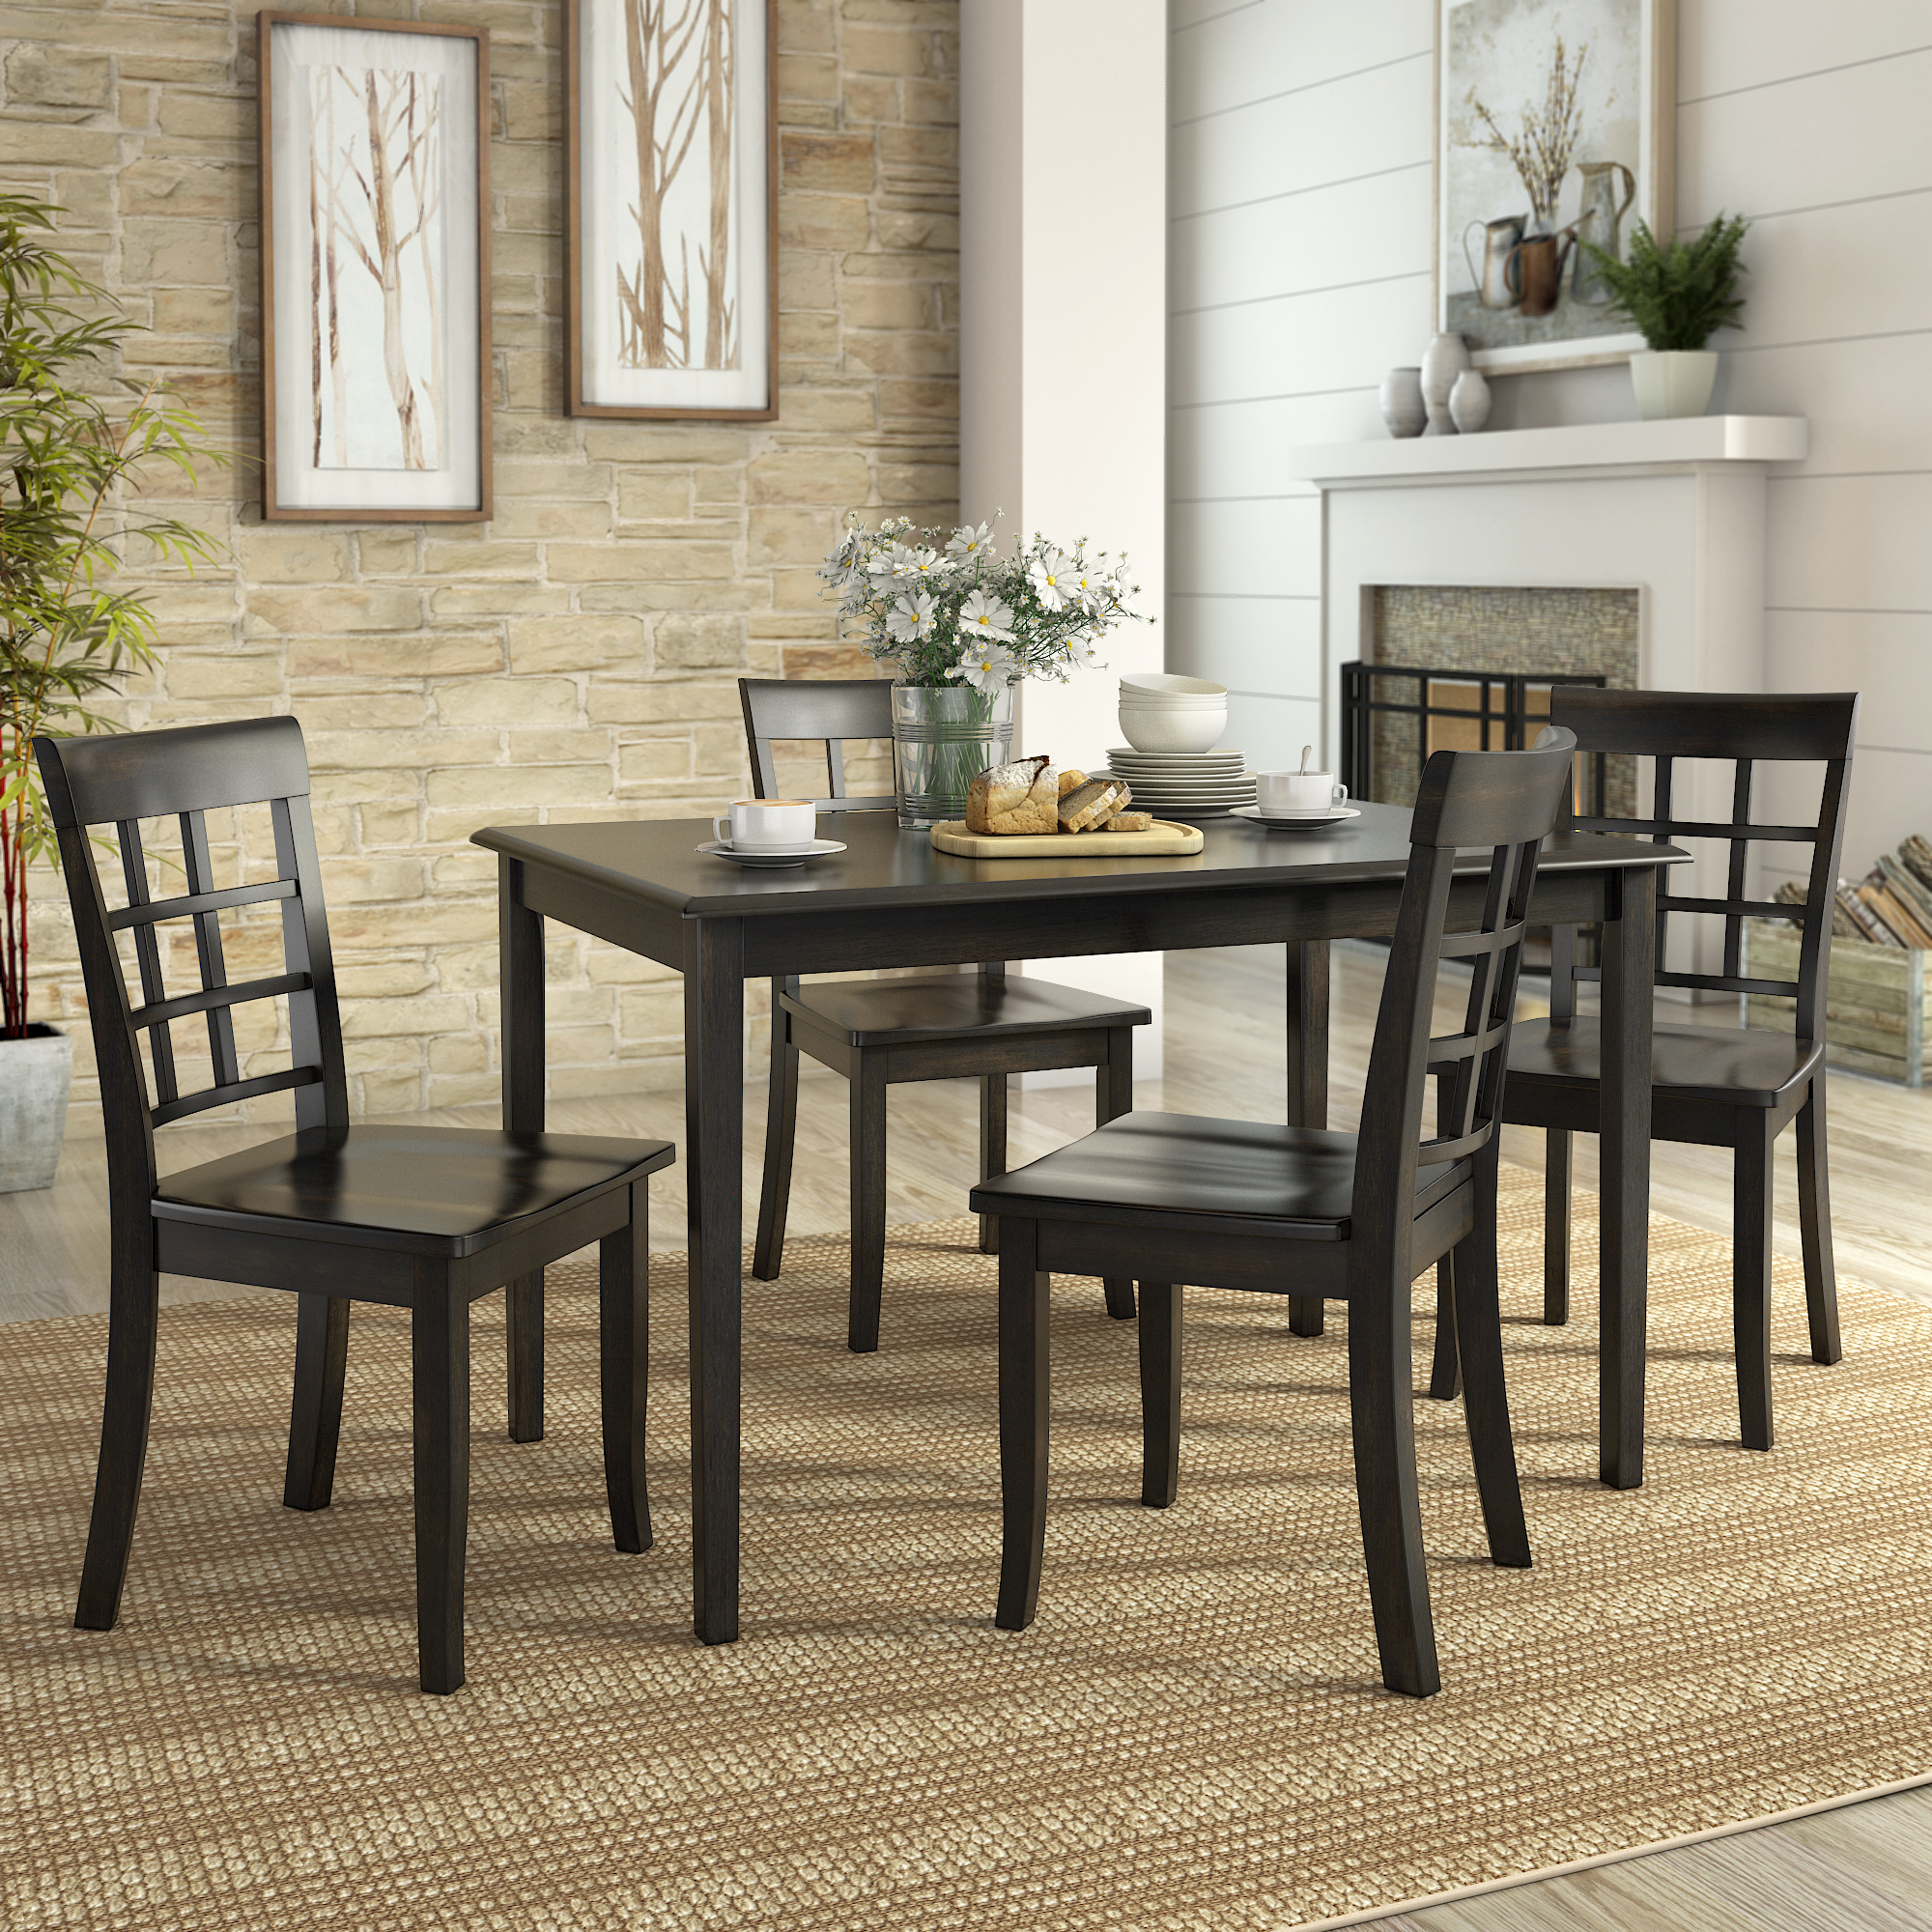 Click here to buy Lexington 5-Piece Dining Room Set with 4 Window Back Chairs by Weston Home.